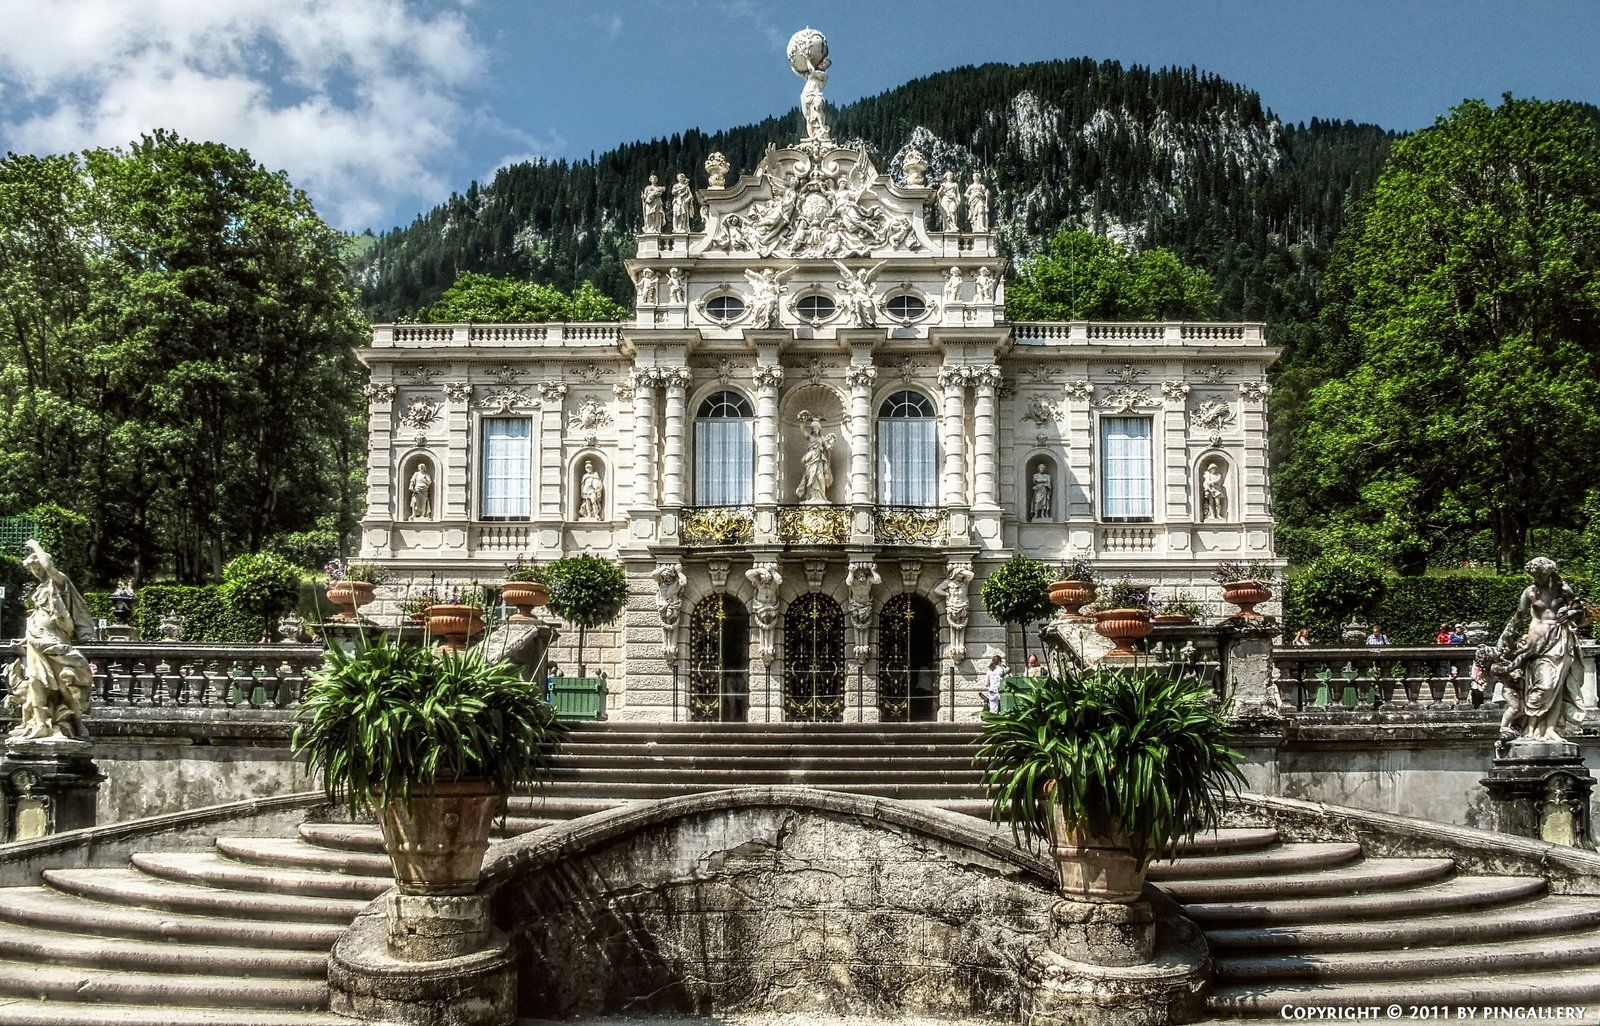 Ettal - Castle Linderhof | Fairytales | Pinterest | Castles and ...